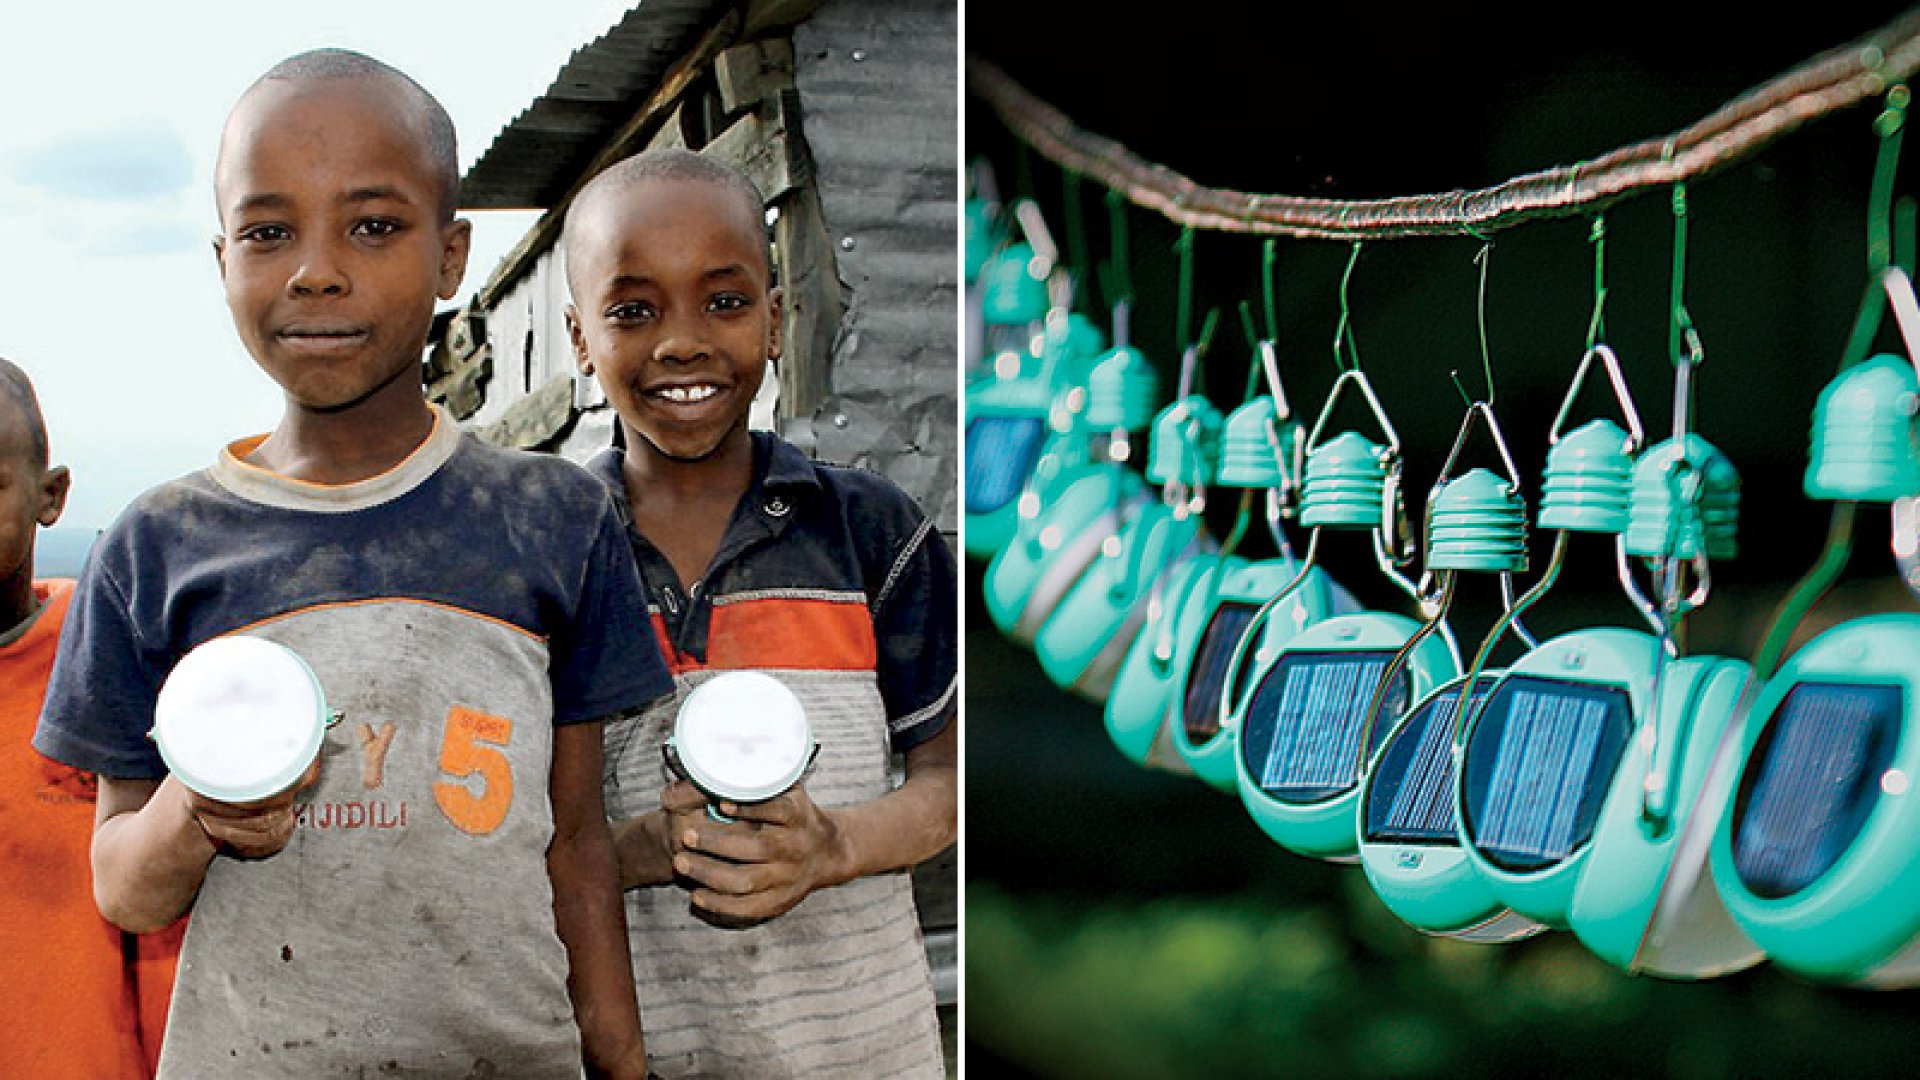 The Entrepreneur Lighting Up Communities in Need